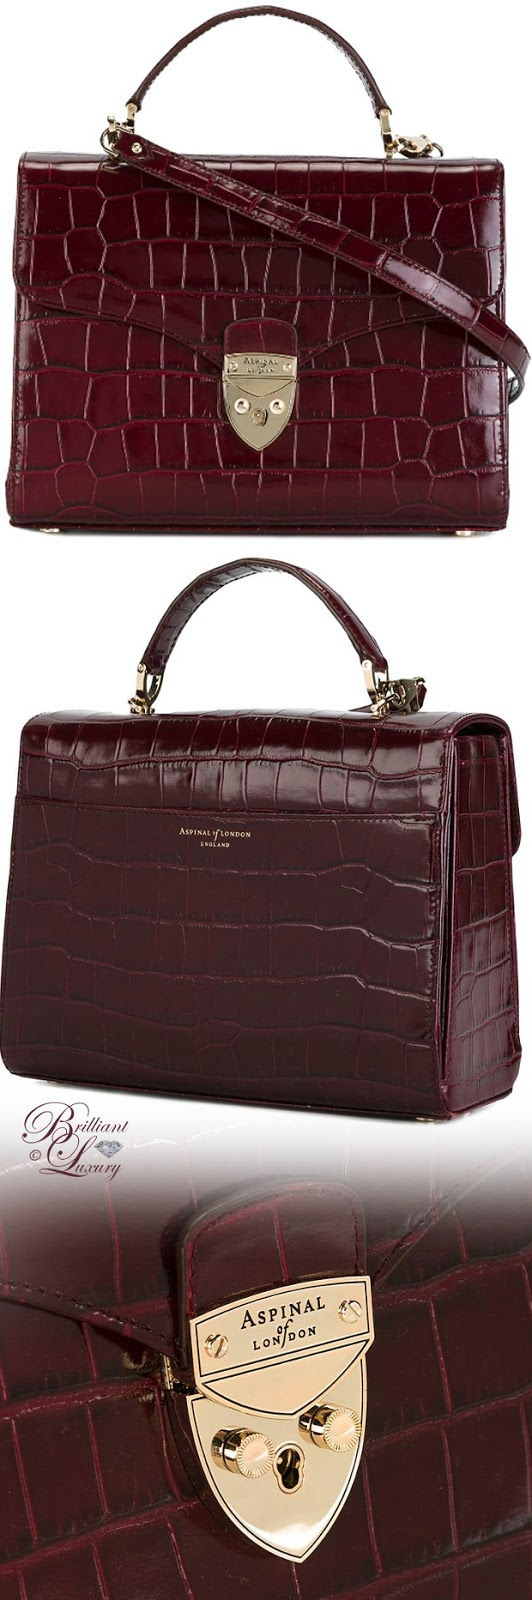 Brilliant Luxury ♦ Aspinal of London Top Handle Crossbody Bag